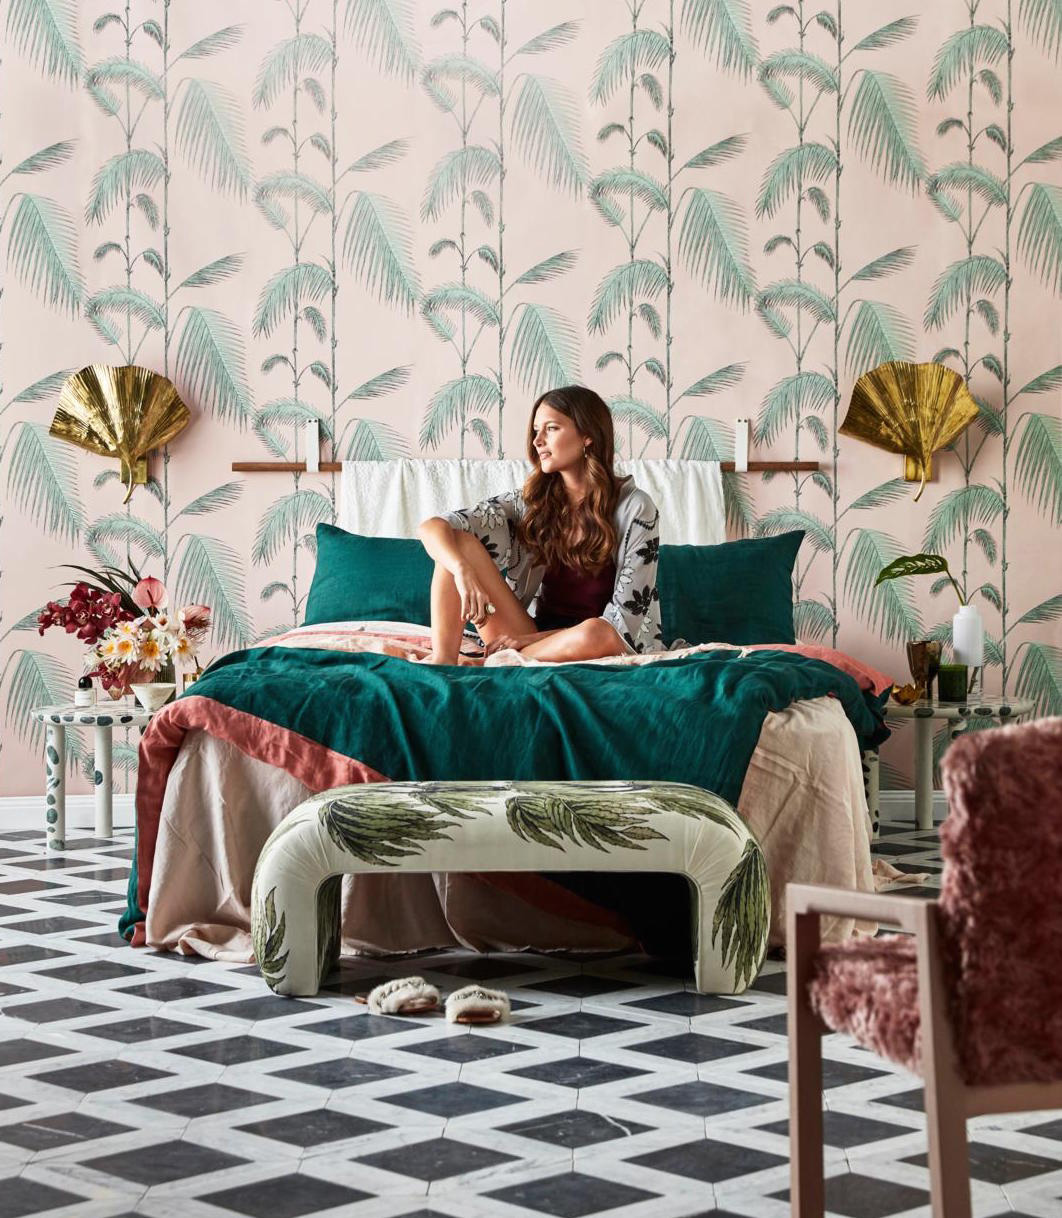 Set Design Kerrie-Ann Jones Style Editor Sydney & Melbourne.  Real Living Magazine, Winter Bedroom Styling, Interior Design.  Painted Wall Mural.  Feminine Styling.  Inside Out Magazine, Vogue Living, House & Garden, Homes to Love & Belle Magazine. #setdesign #magazine #bedroomstyling